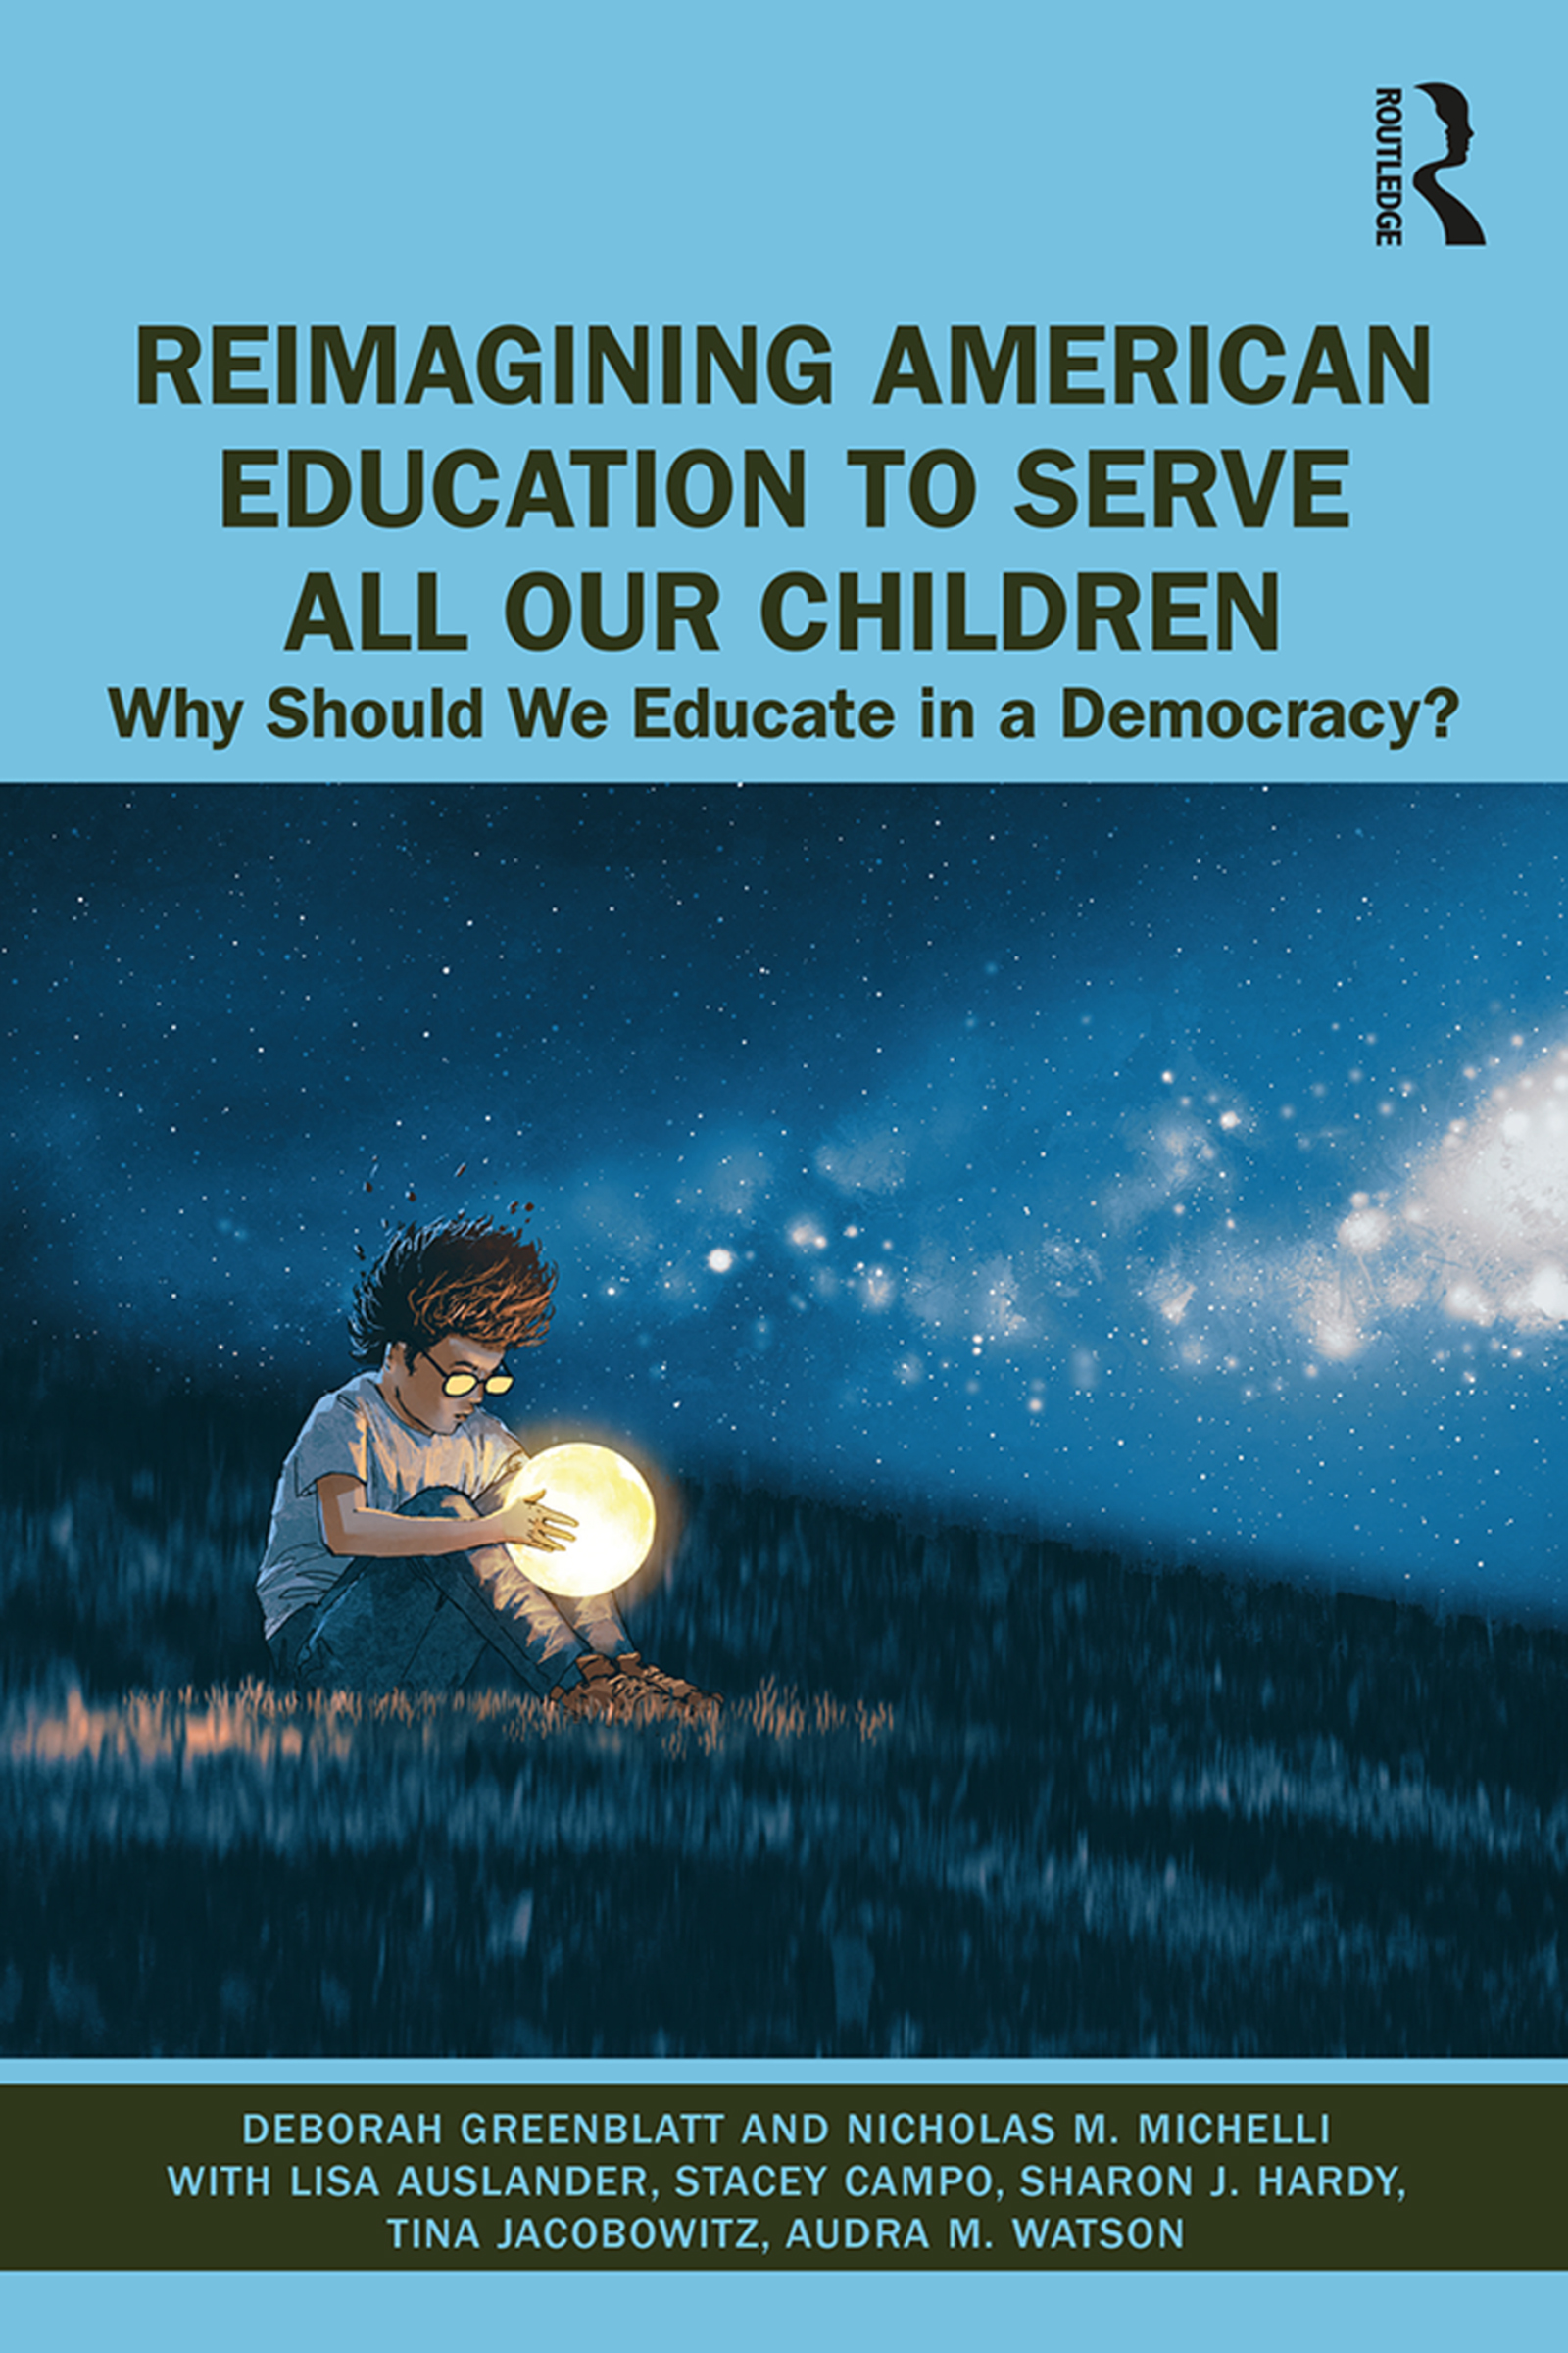 Reimagining American Education to Serve All Our Children: Why Should We Educate in a Democracy? book cover